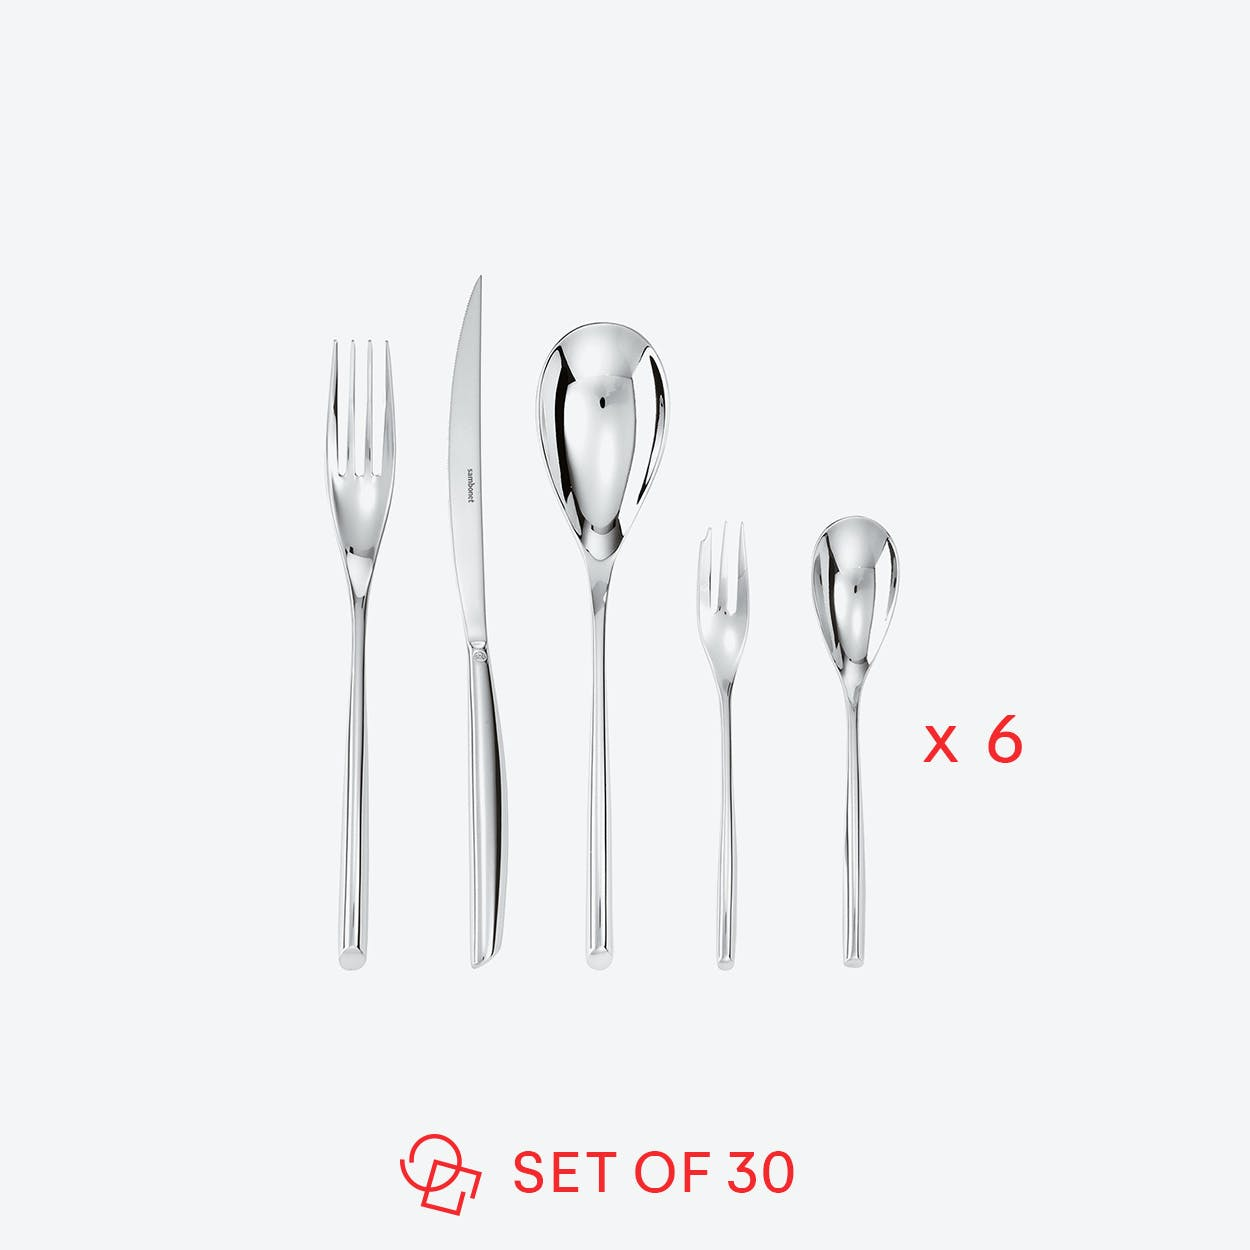 Bamboo Stainless Steel Set (30 pcs S.H.)